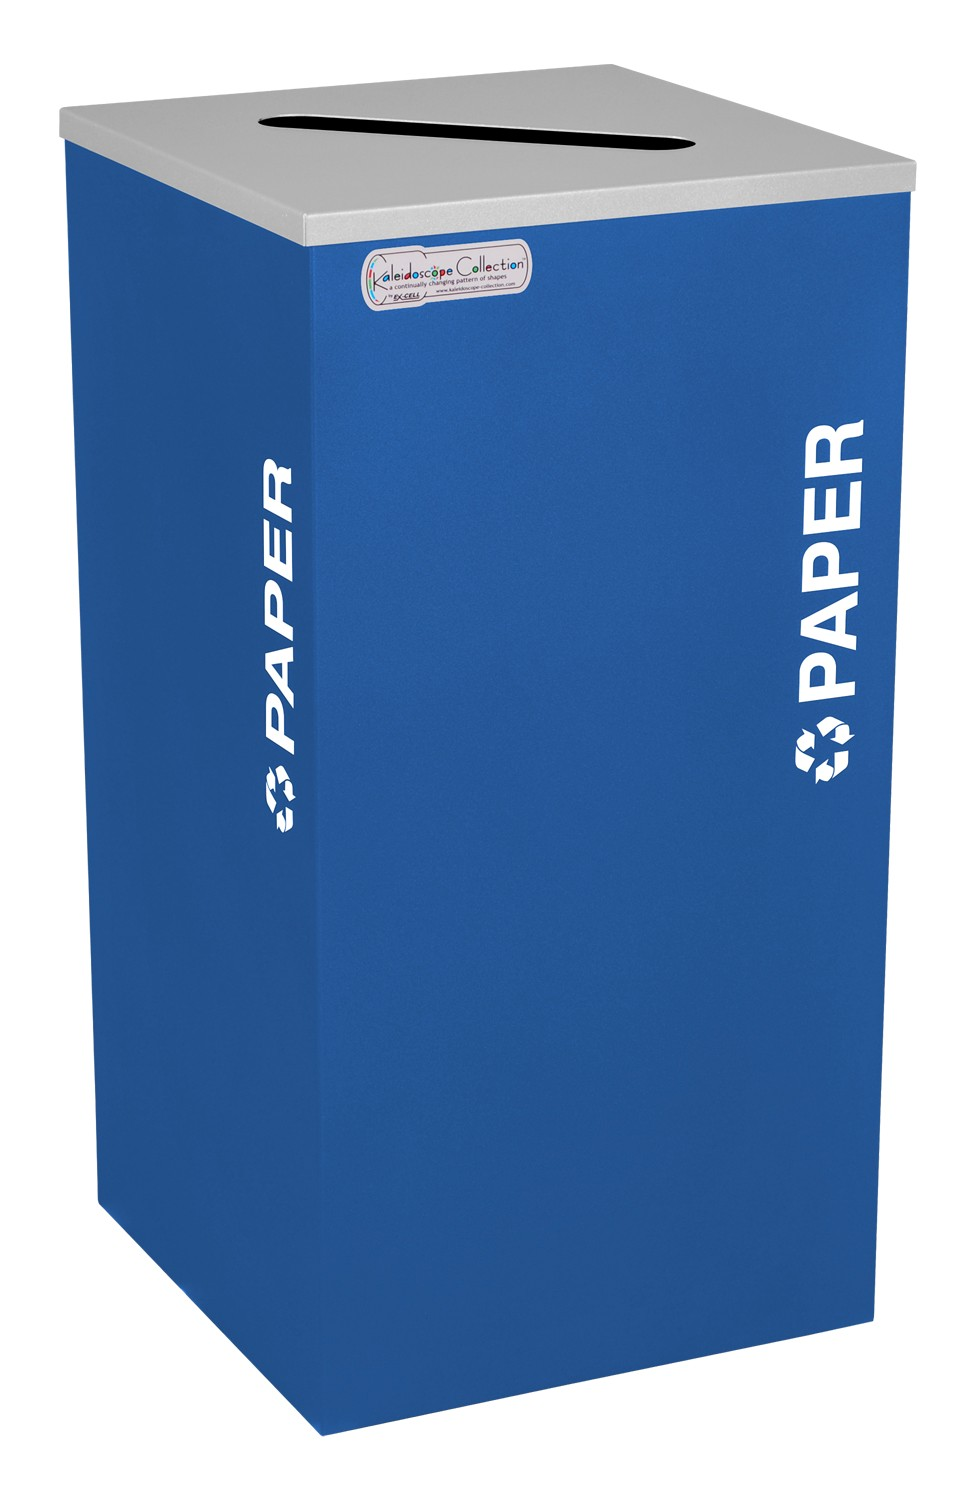 Ex-Cell Kaiser RC-KDSQ-P RYX 18-gal recycling recptacle- square top and Plastic decal- Royal Blue Texture finish